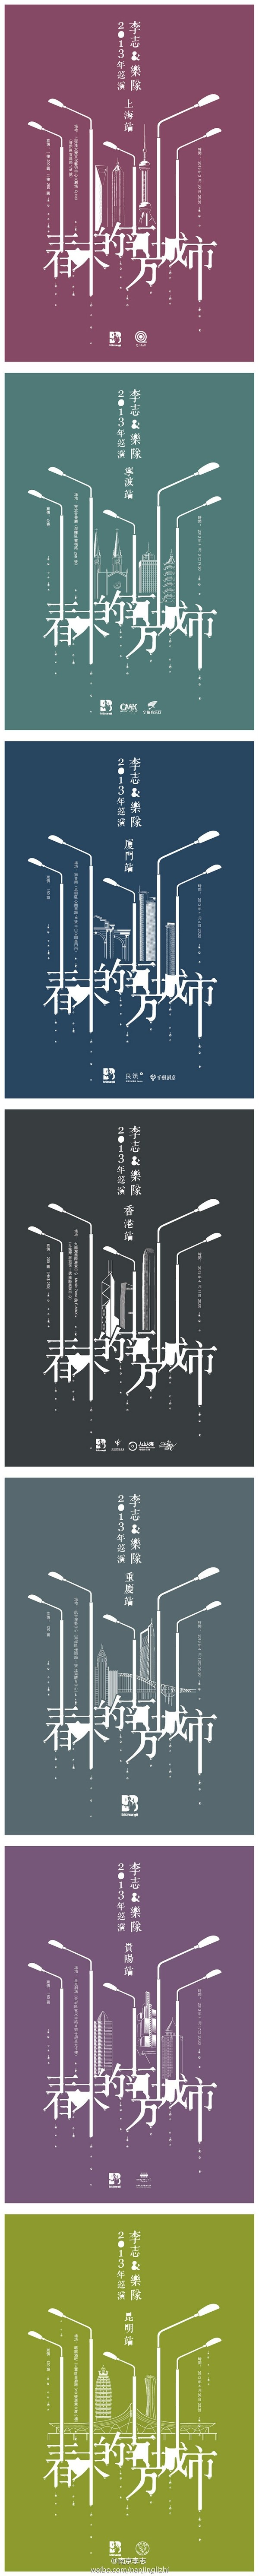 poster set | 李志「春末的南方城市」巡演海报 Li Chi — In the Southern City Late Spring Tour Poster